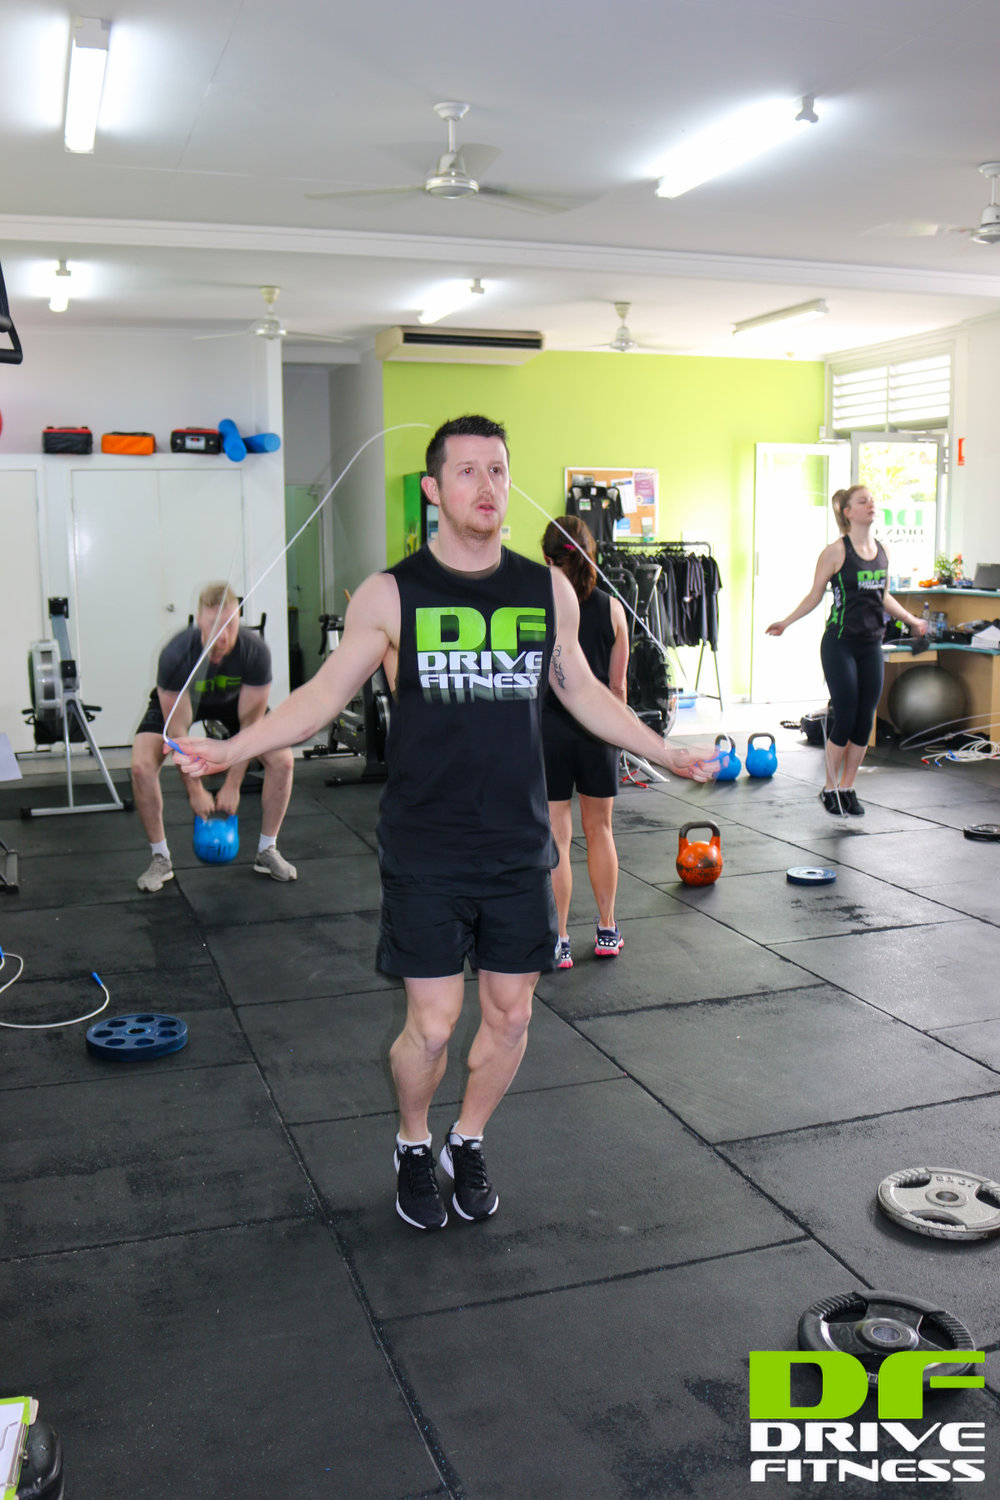 drive-fitness-personal-training-brisbane-4wws-2018 (20 of 34).jpg